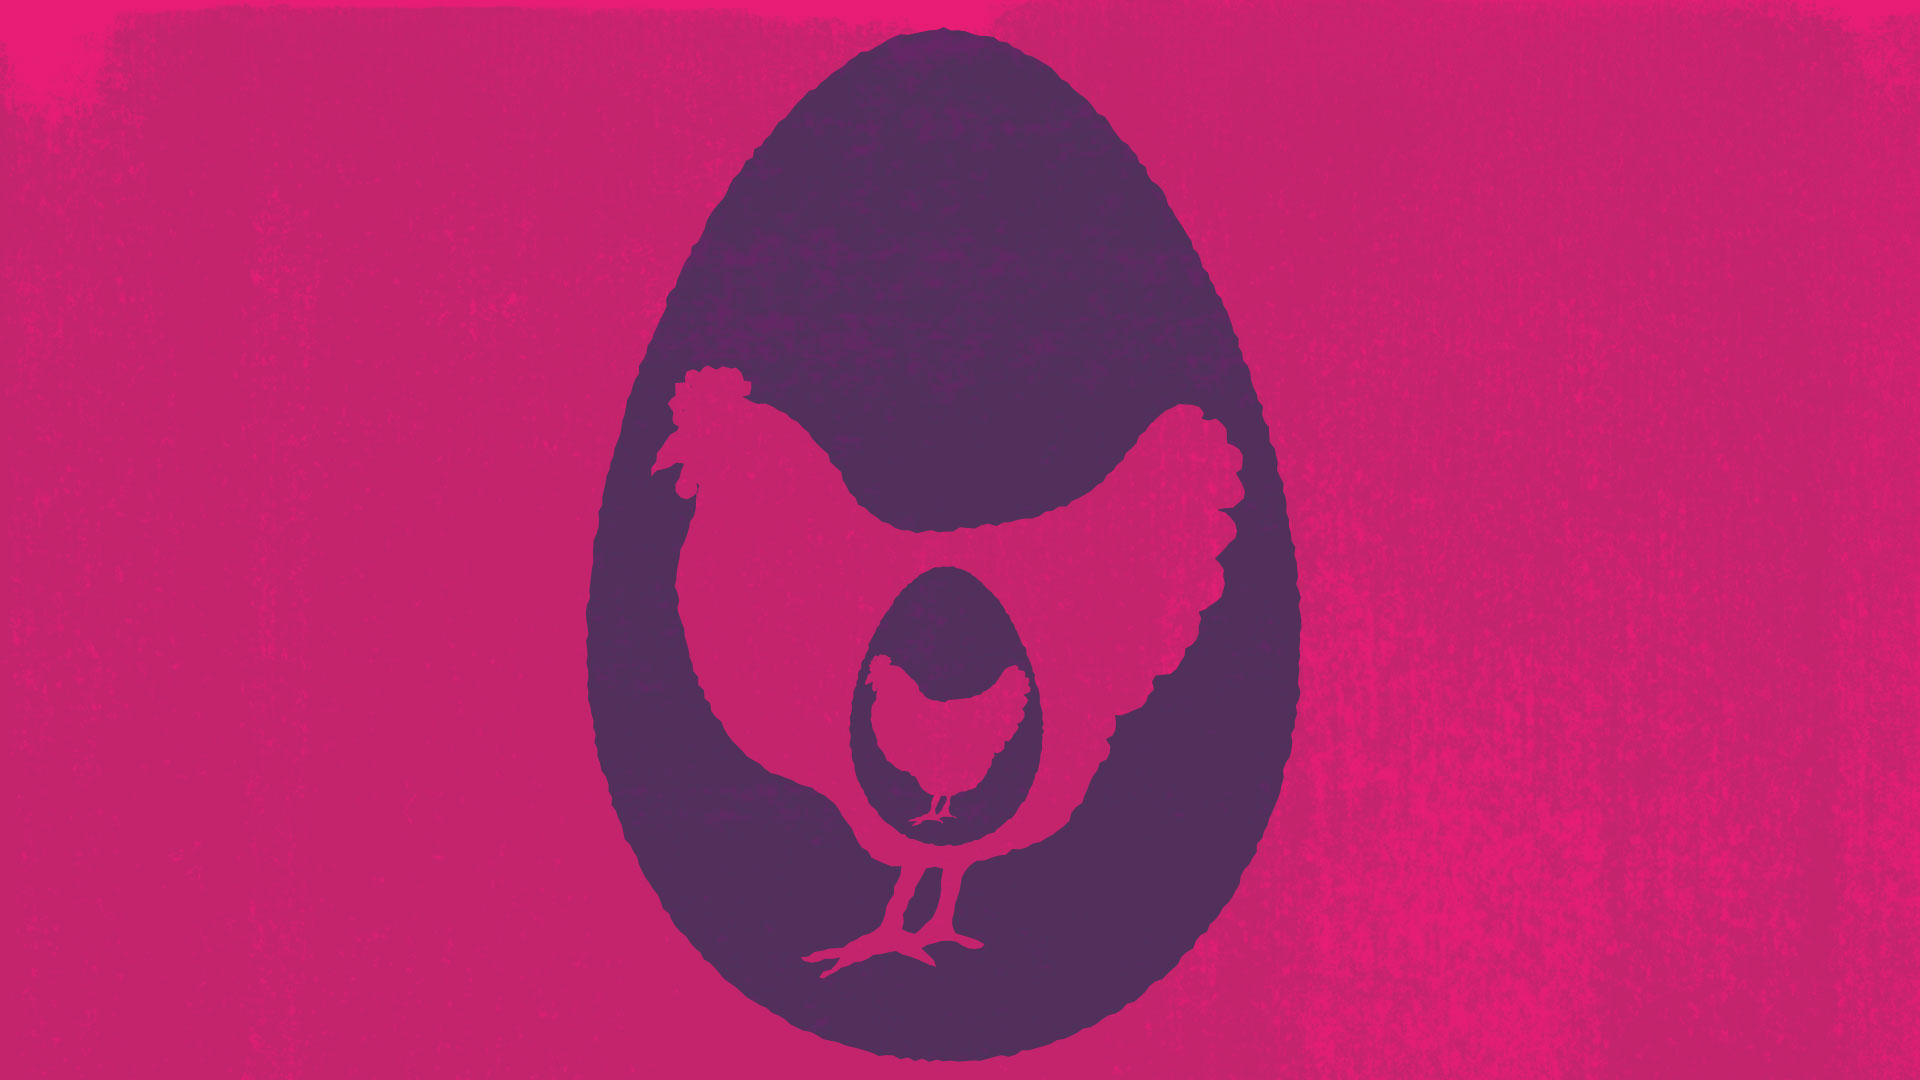 Customer-experience-employee-experience-Chicken-egg